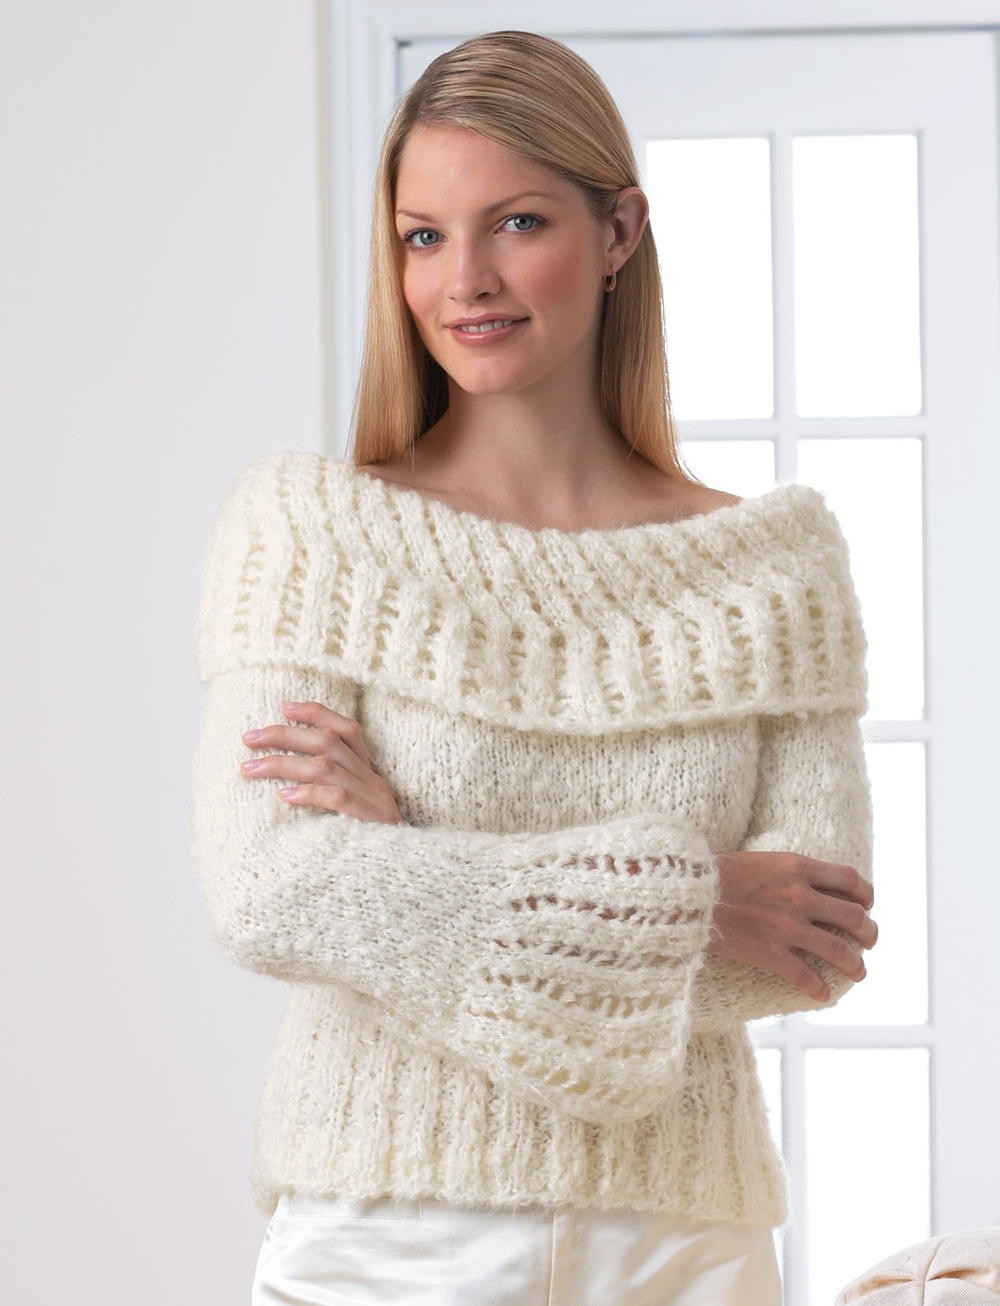 Lacework Crochet Best Of Lacework Sweater Of Brilliant 50 Pics Lacework Crochet